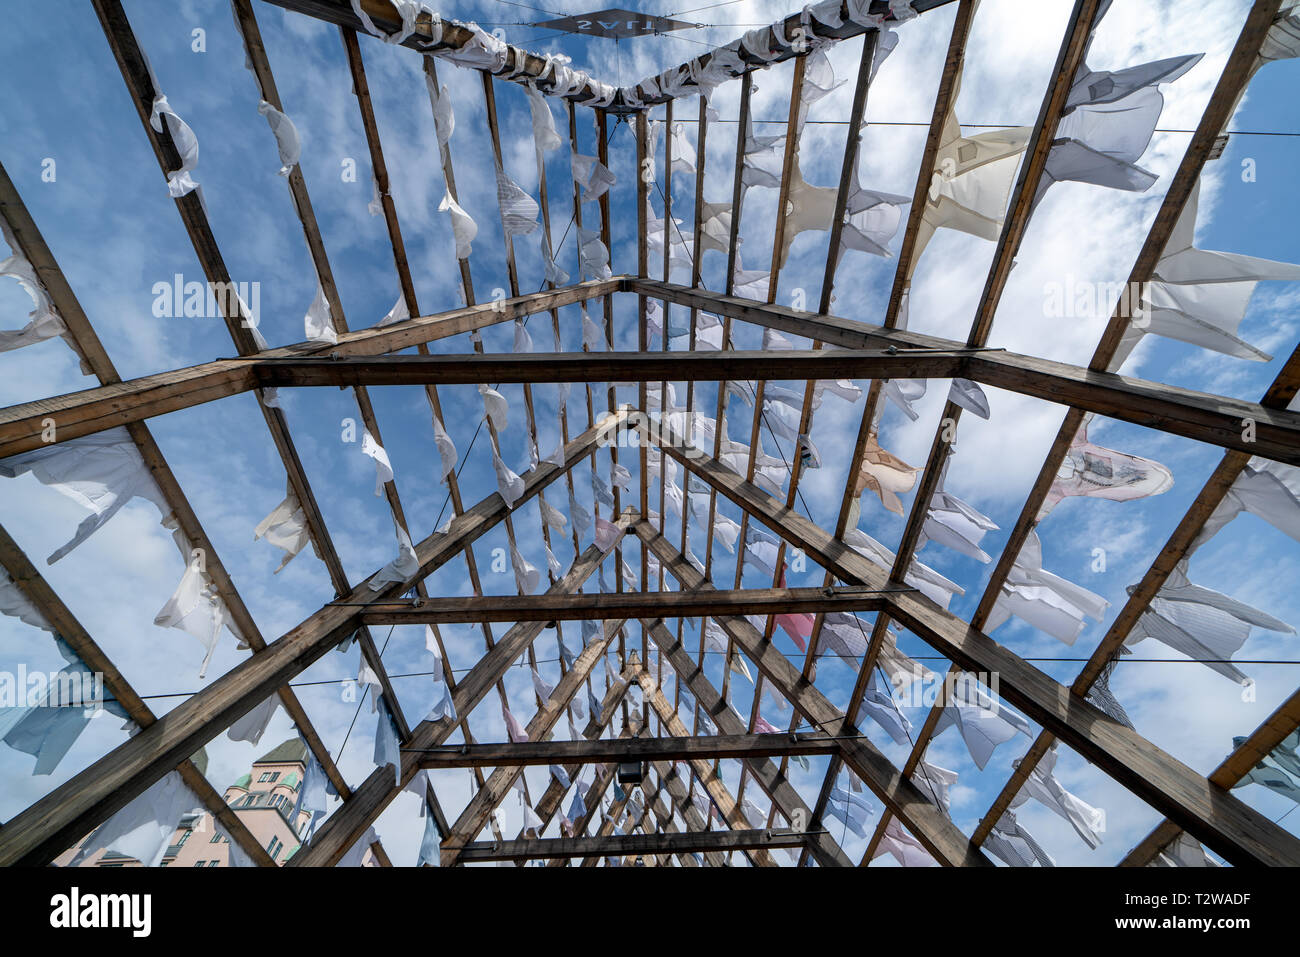 Oslo, Norway- September 23, 2018: The new harbour promenade in oslo has some nice sites like the Arctic Pyramid, wich is is a long fish rack used to h - Stock Image